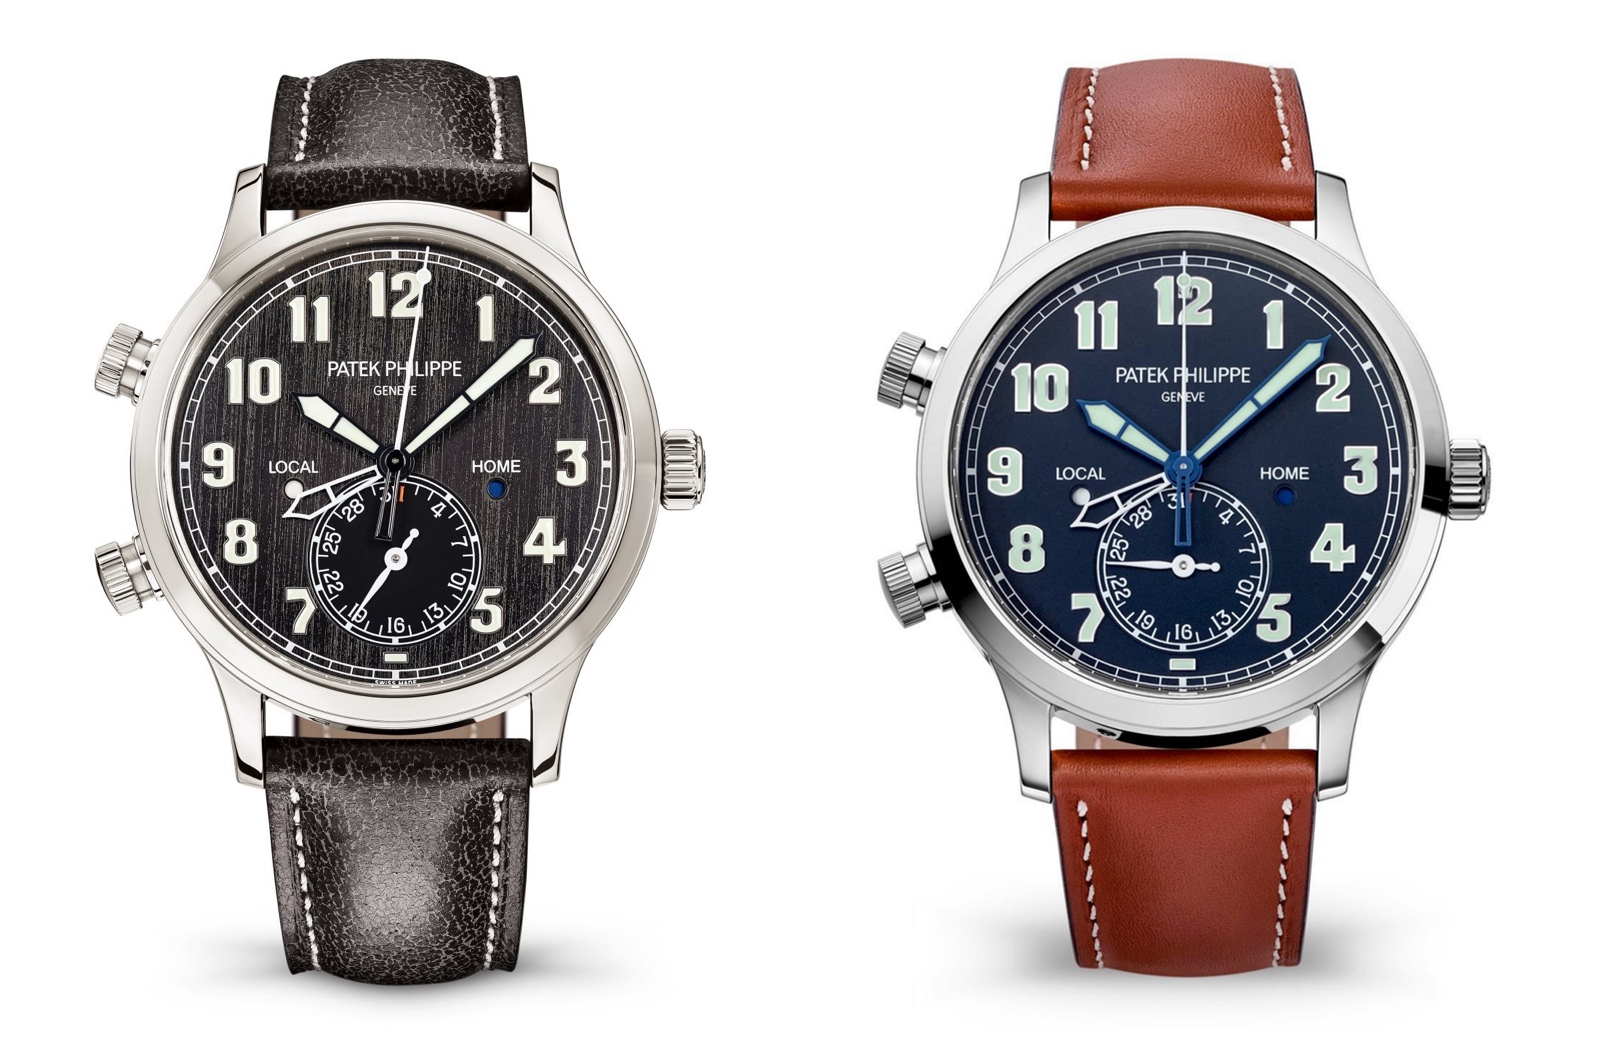 Patek Philippe Calatrava Pilot Travel Time 5524T vs 5524G